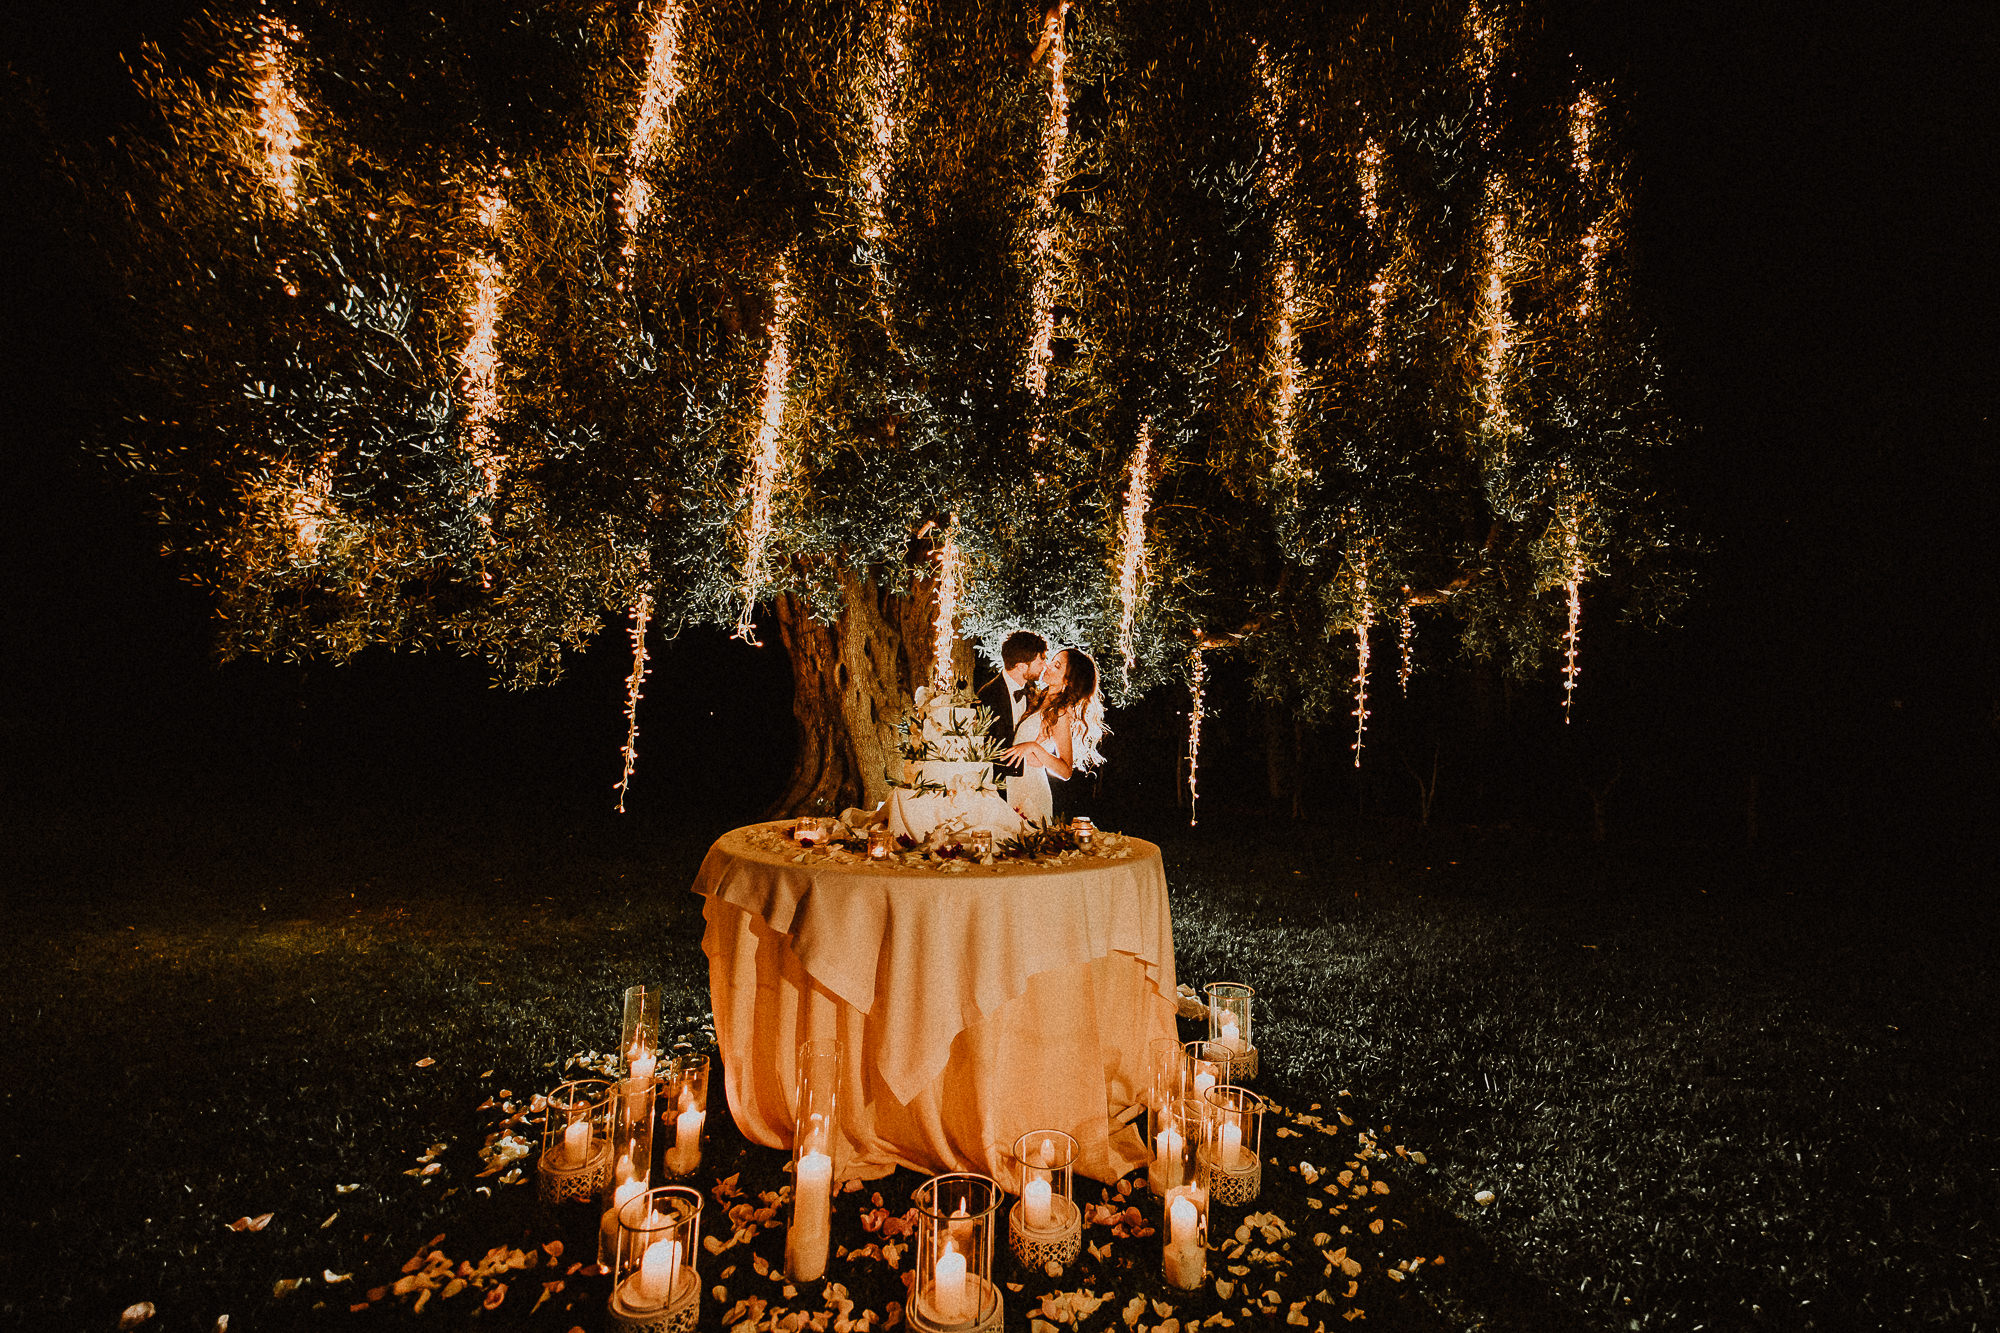 cutting the cake at the wedding wedding-elopement-photographer-destination-puglia-boho-vintage-creative-intimate